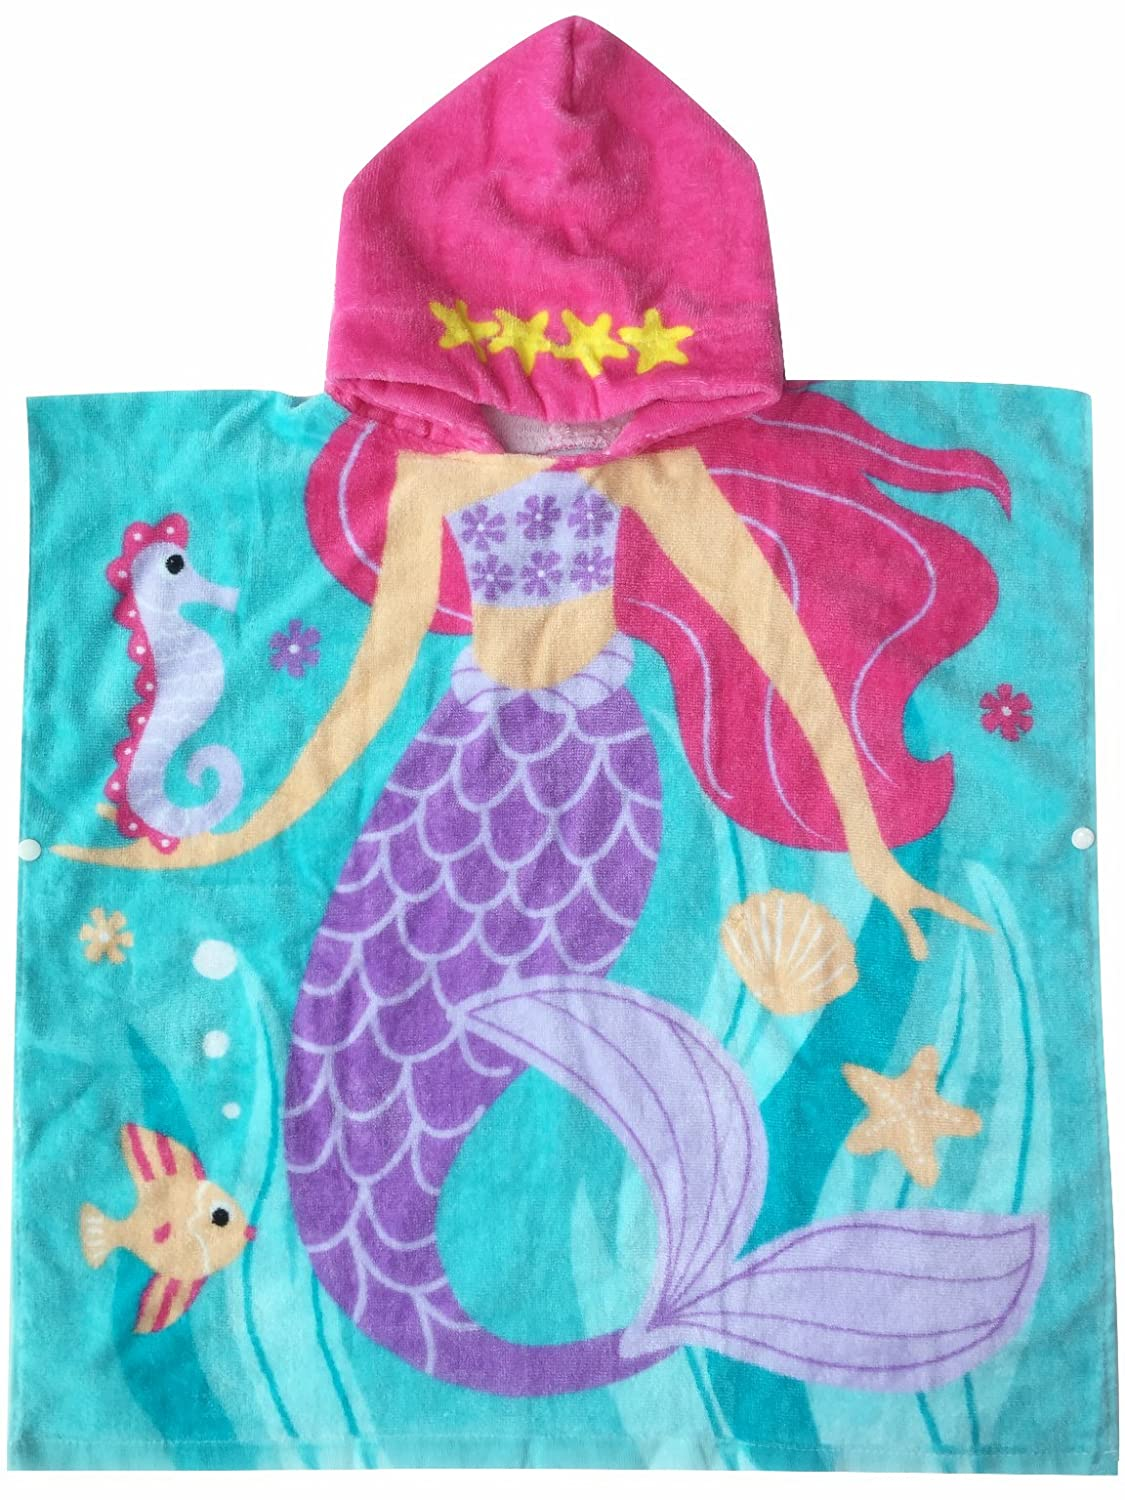 "Hooded Towel for Girls 1 to 6 Years Old Kids and Toddlers 100% Premium Cotton Ultra Soft, Super Absorbent, Extra Large 48"" x 24"", Use for Bath/ Pool/ Beach Times, Mermaid Theme"